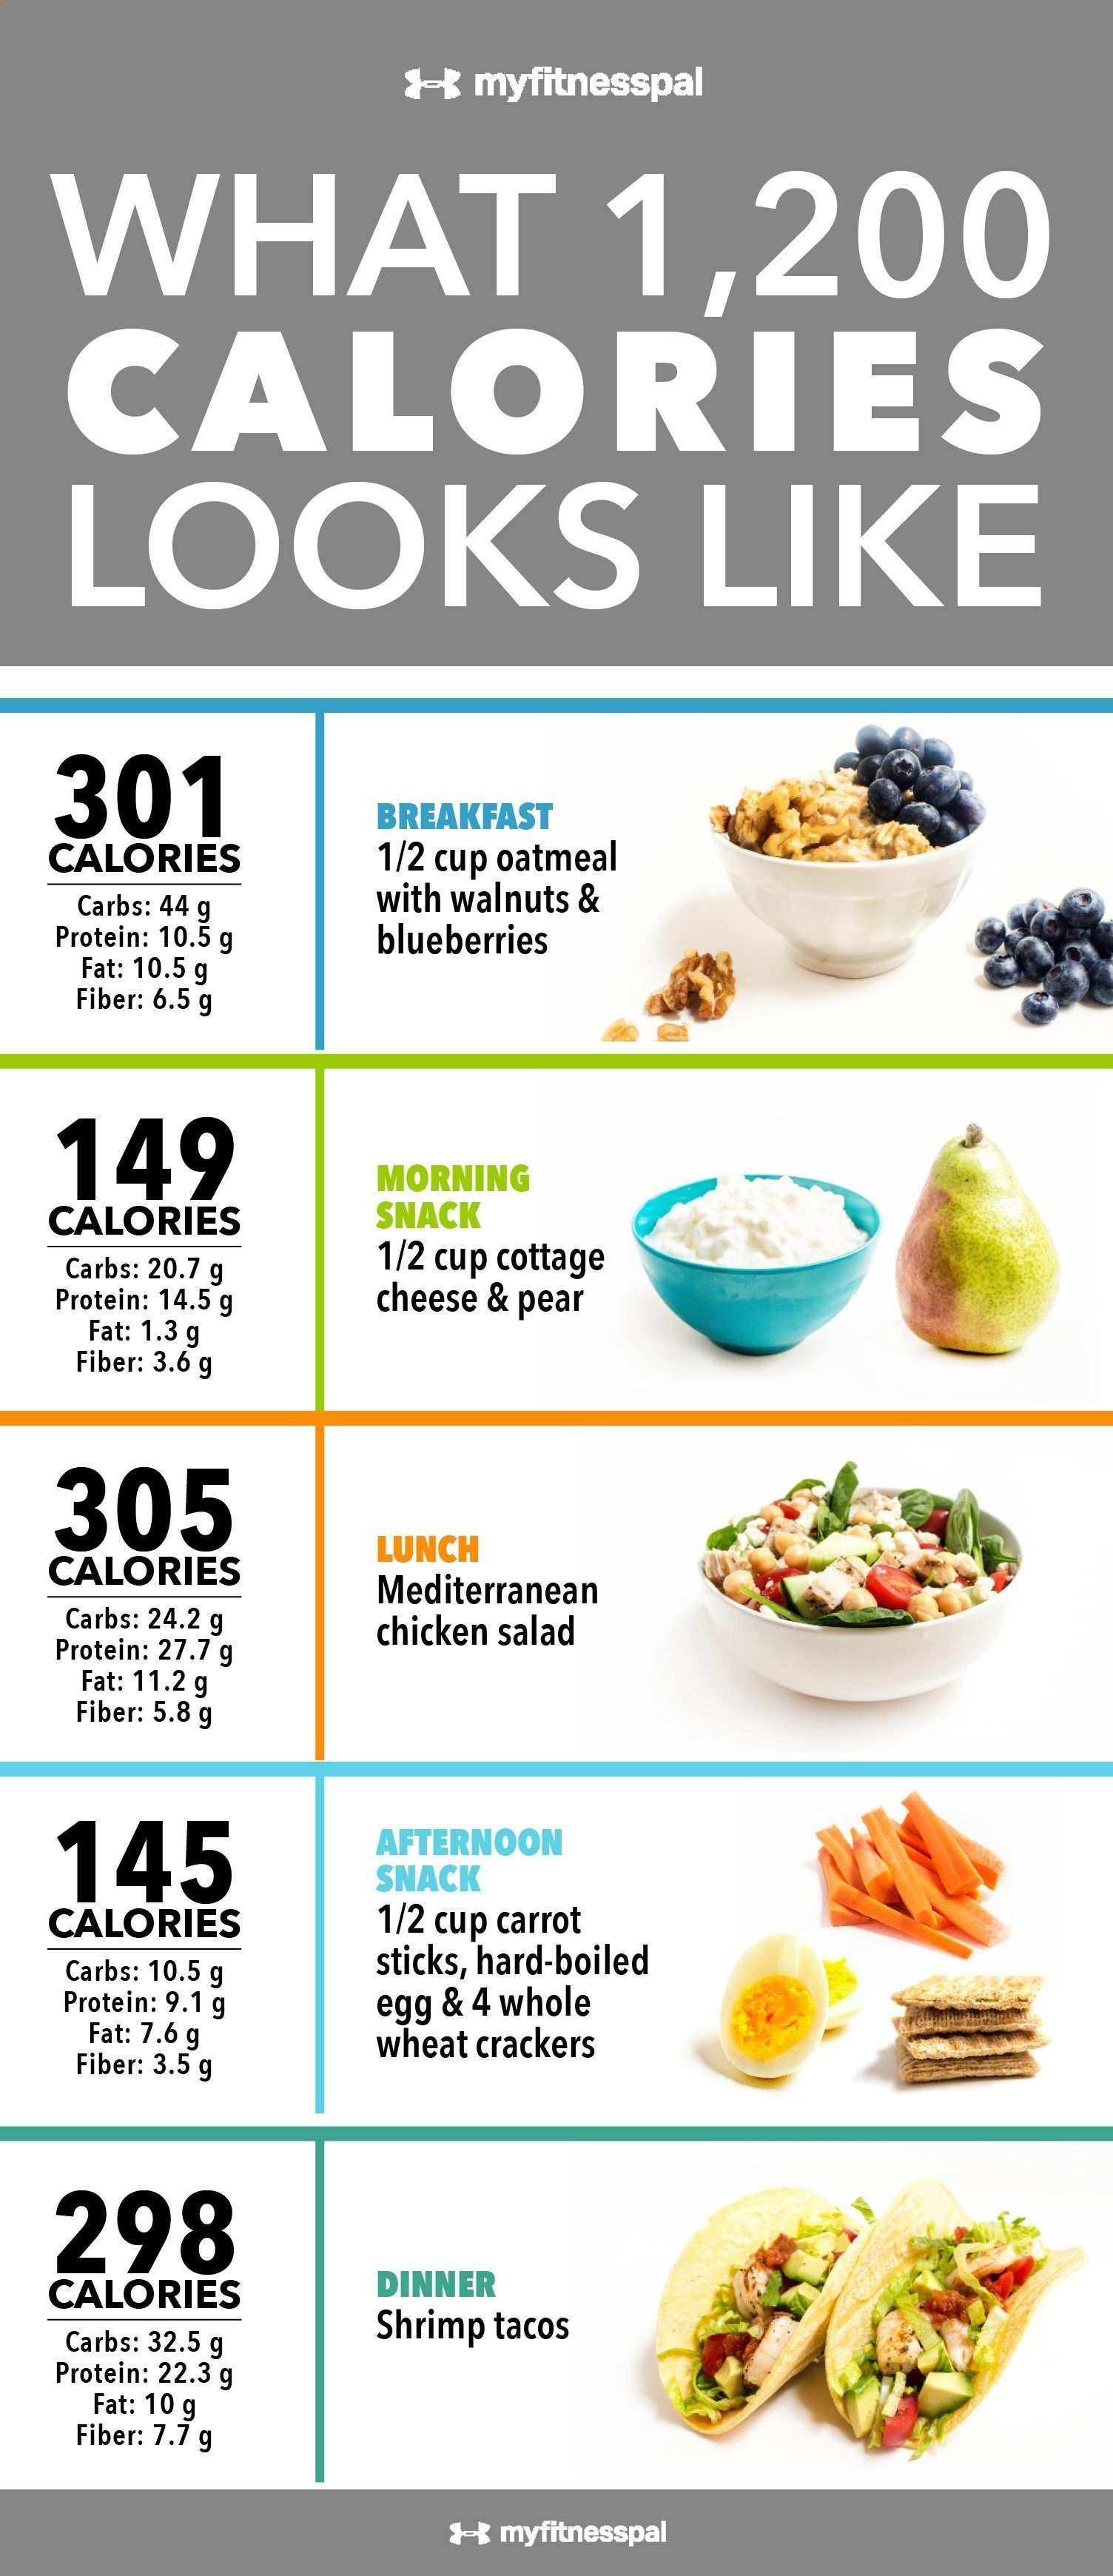 The 3 Week Diet Loss Weight Plan - OK, first things first: 1,200 calories